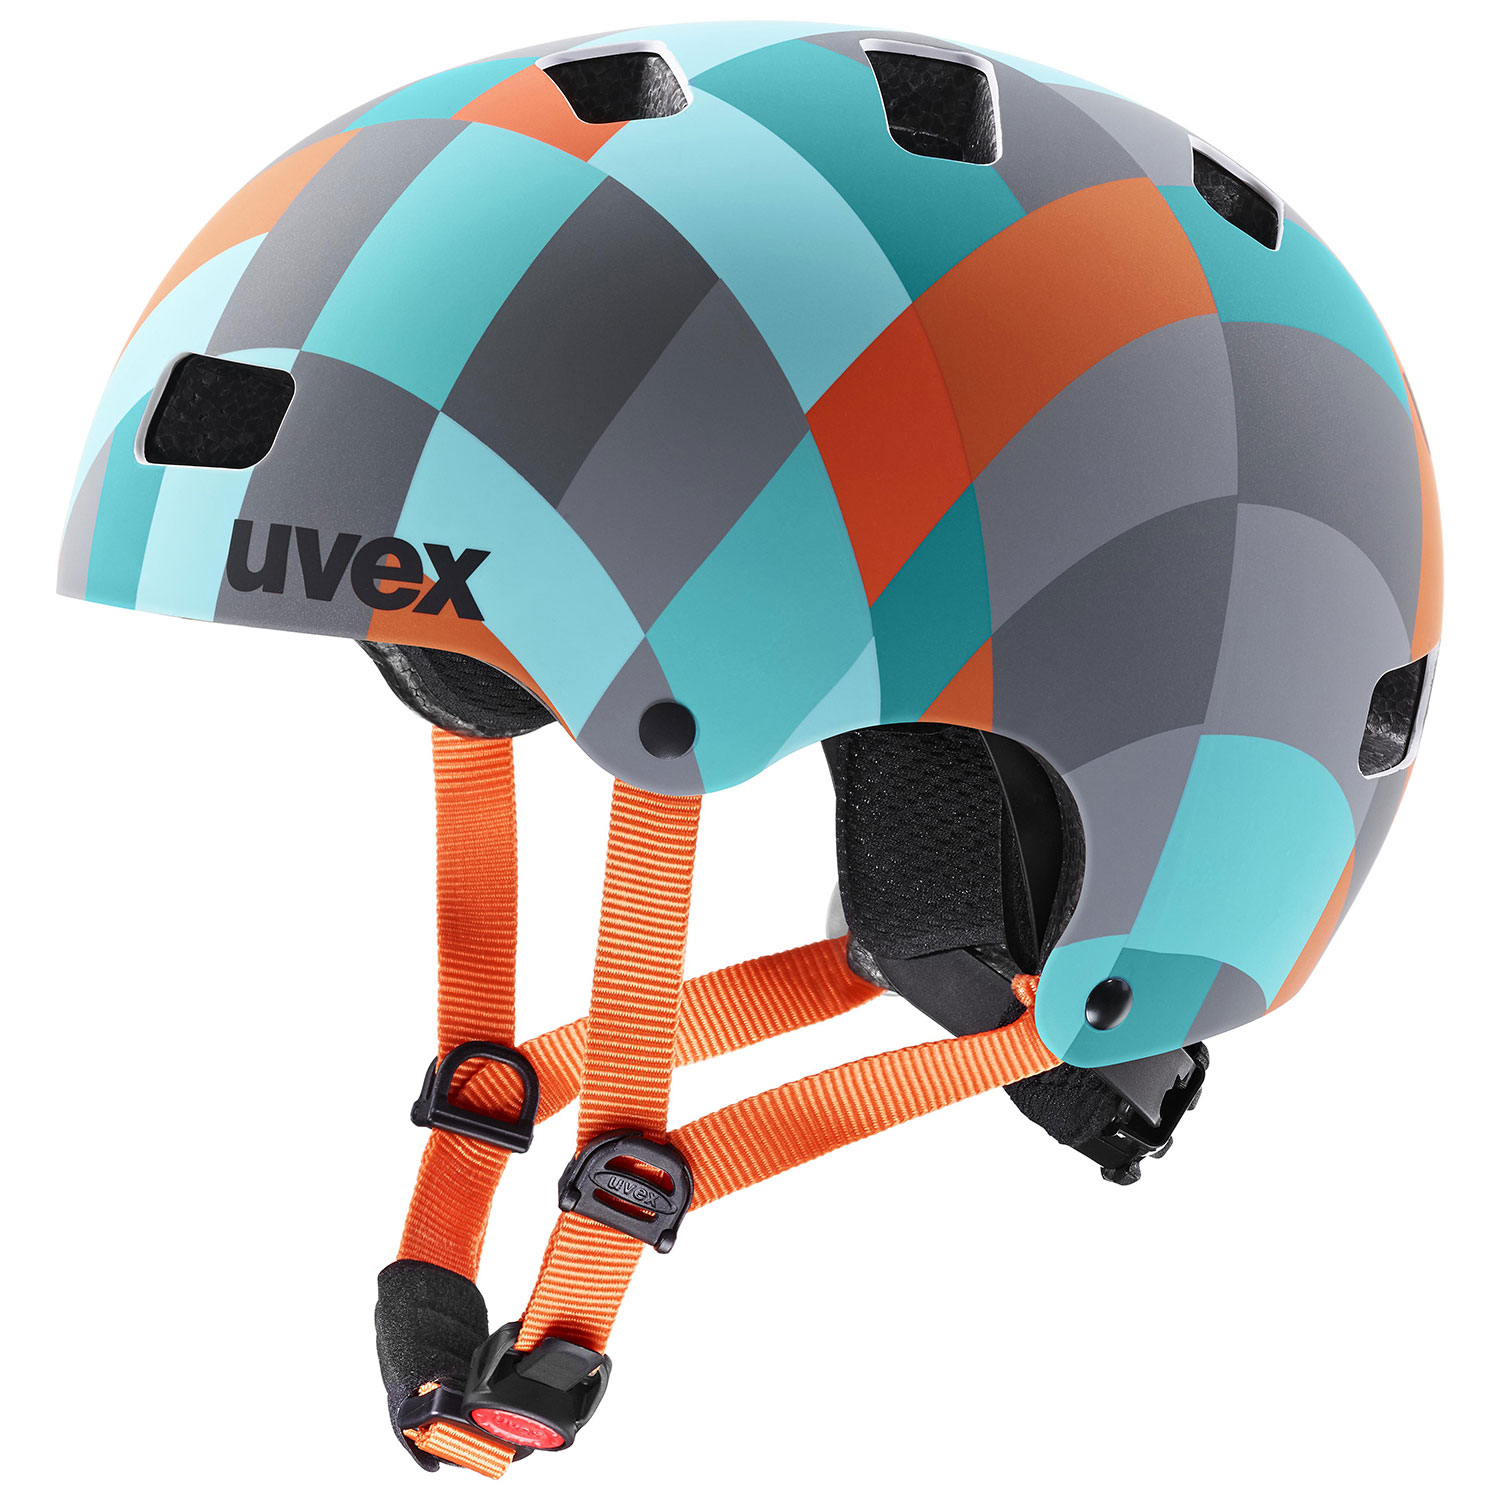 helma UVEX KID 3 CC GREEN CHECKERED 2021 51-55cm